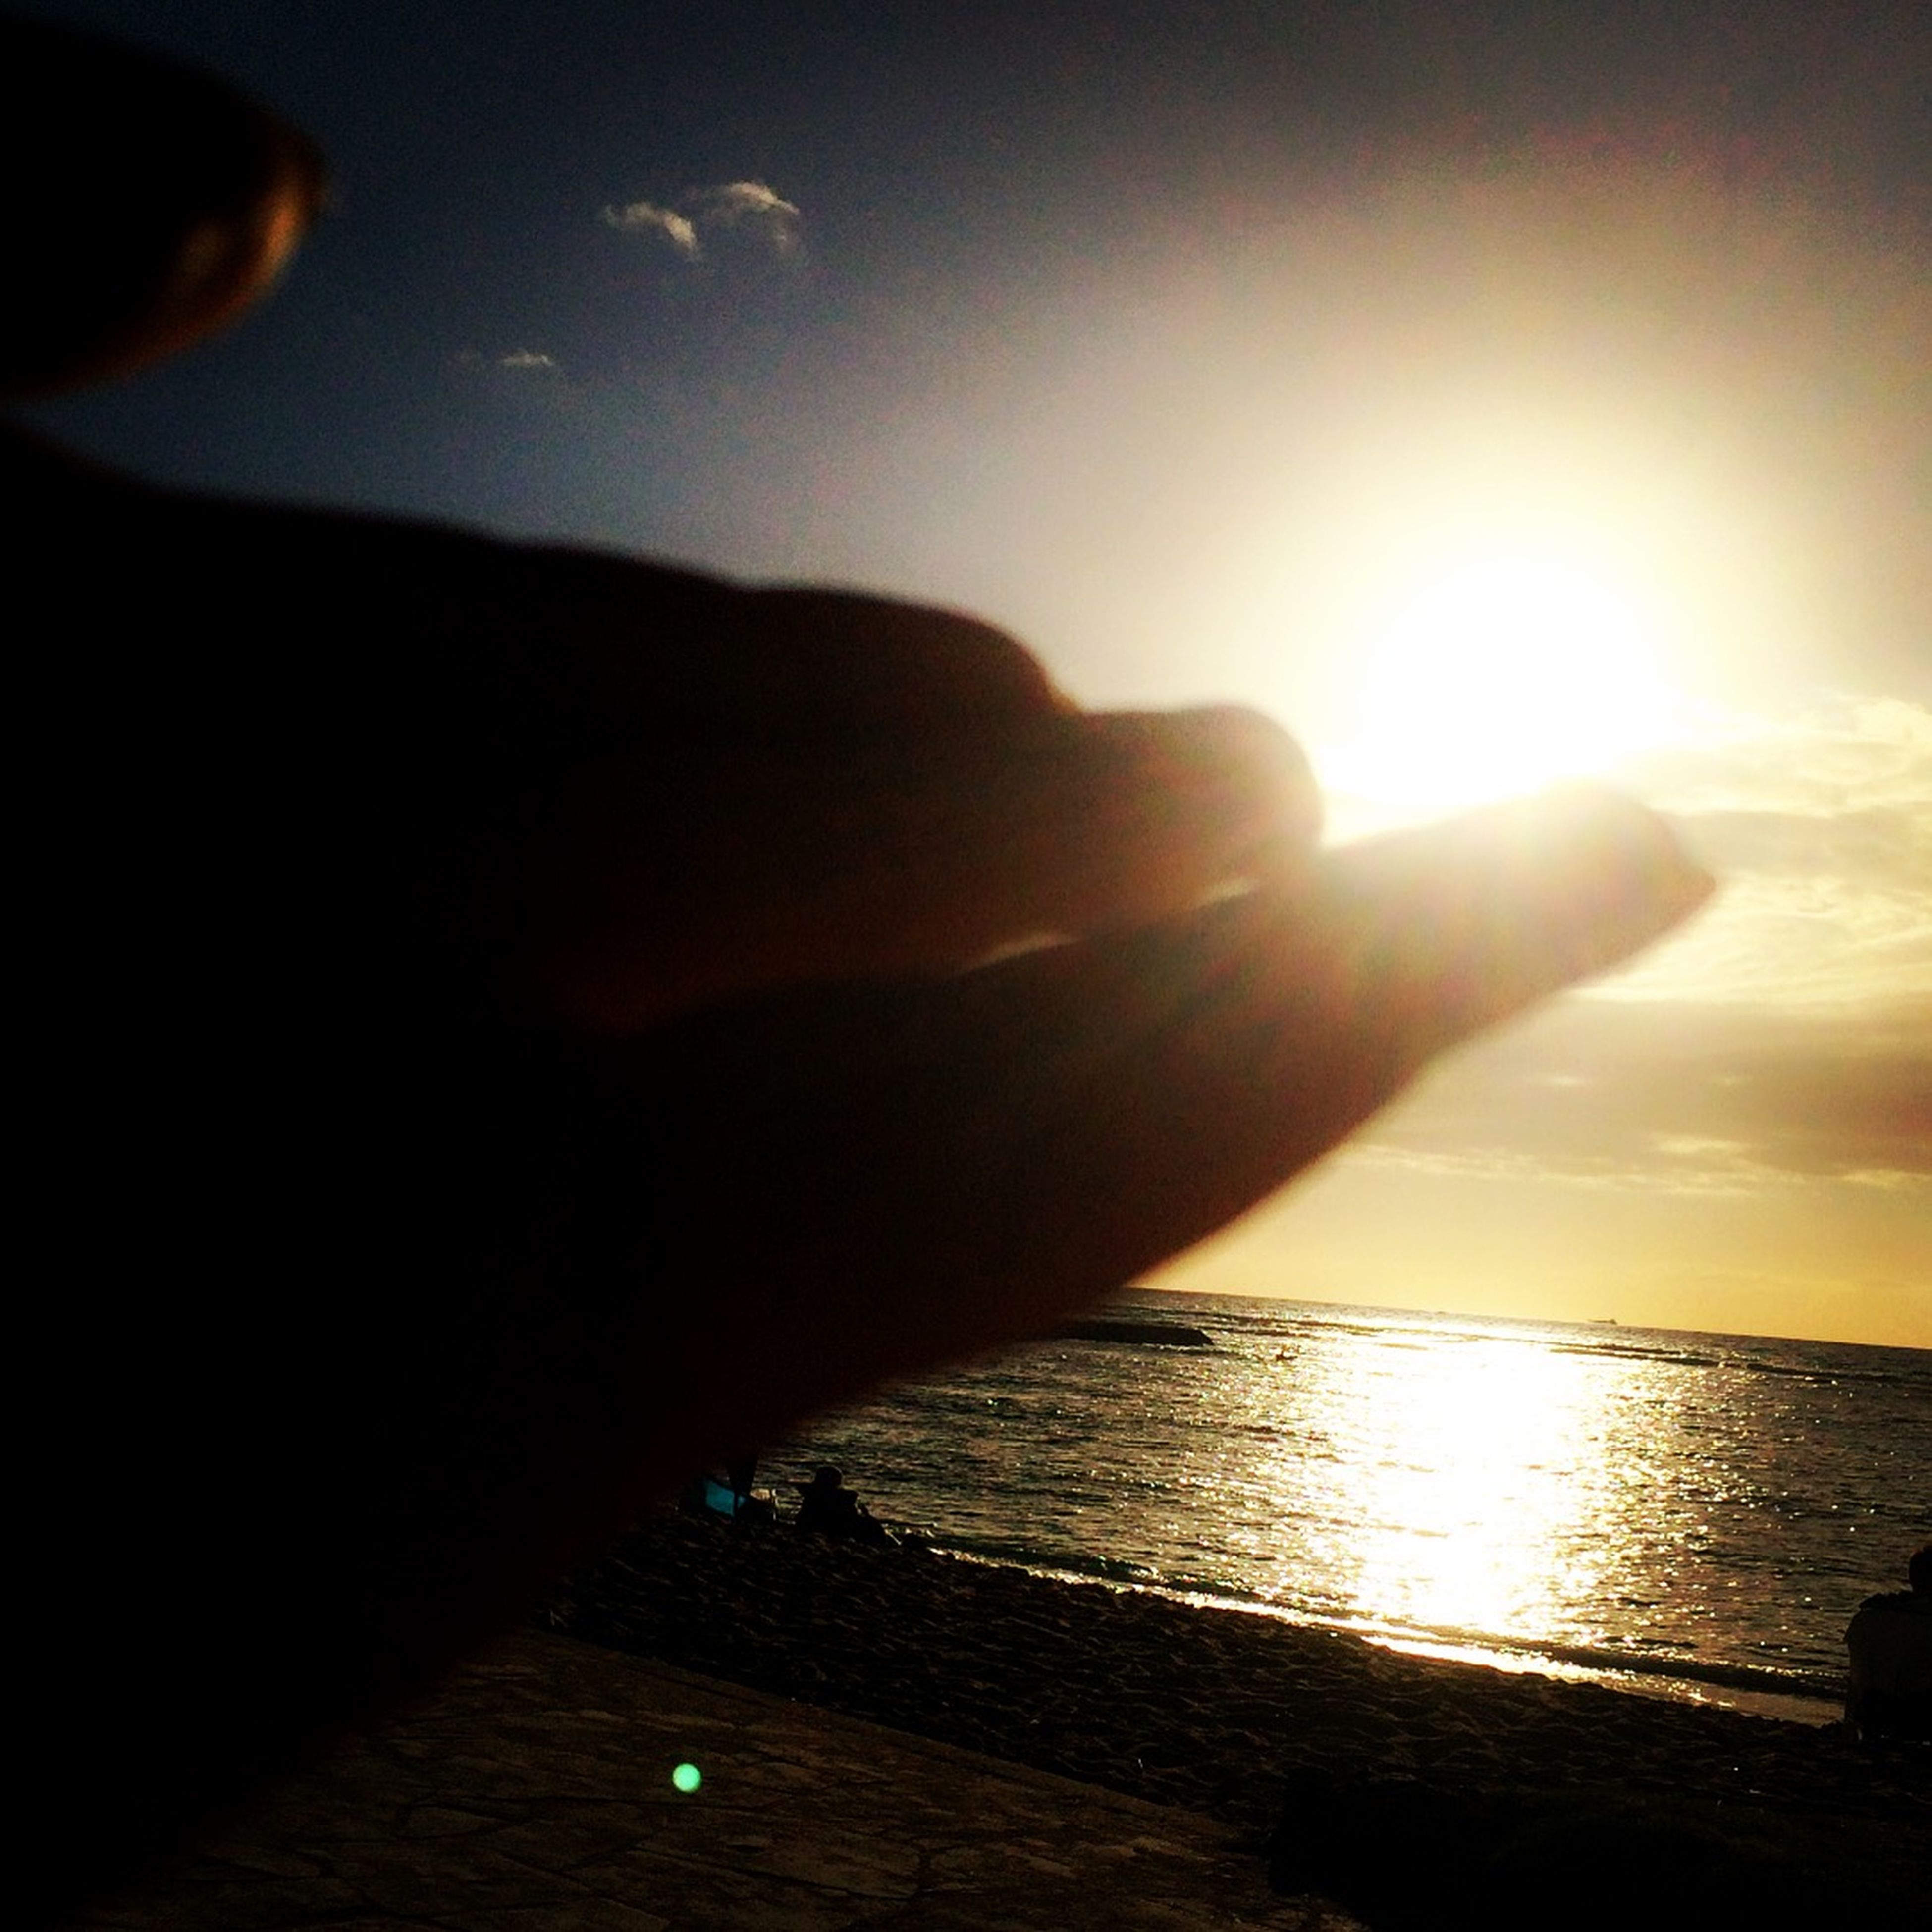 sun, sunset, person, part of, sunlight, cropped, sea, sunbeam, water, sky, lens flare, unrecognizable person, horizon over water, human finger, personal perspective, beach, silhouette